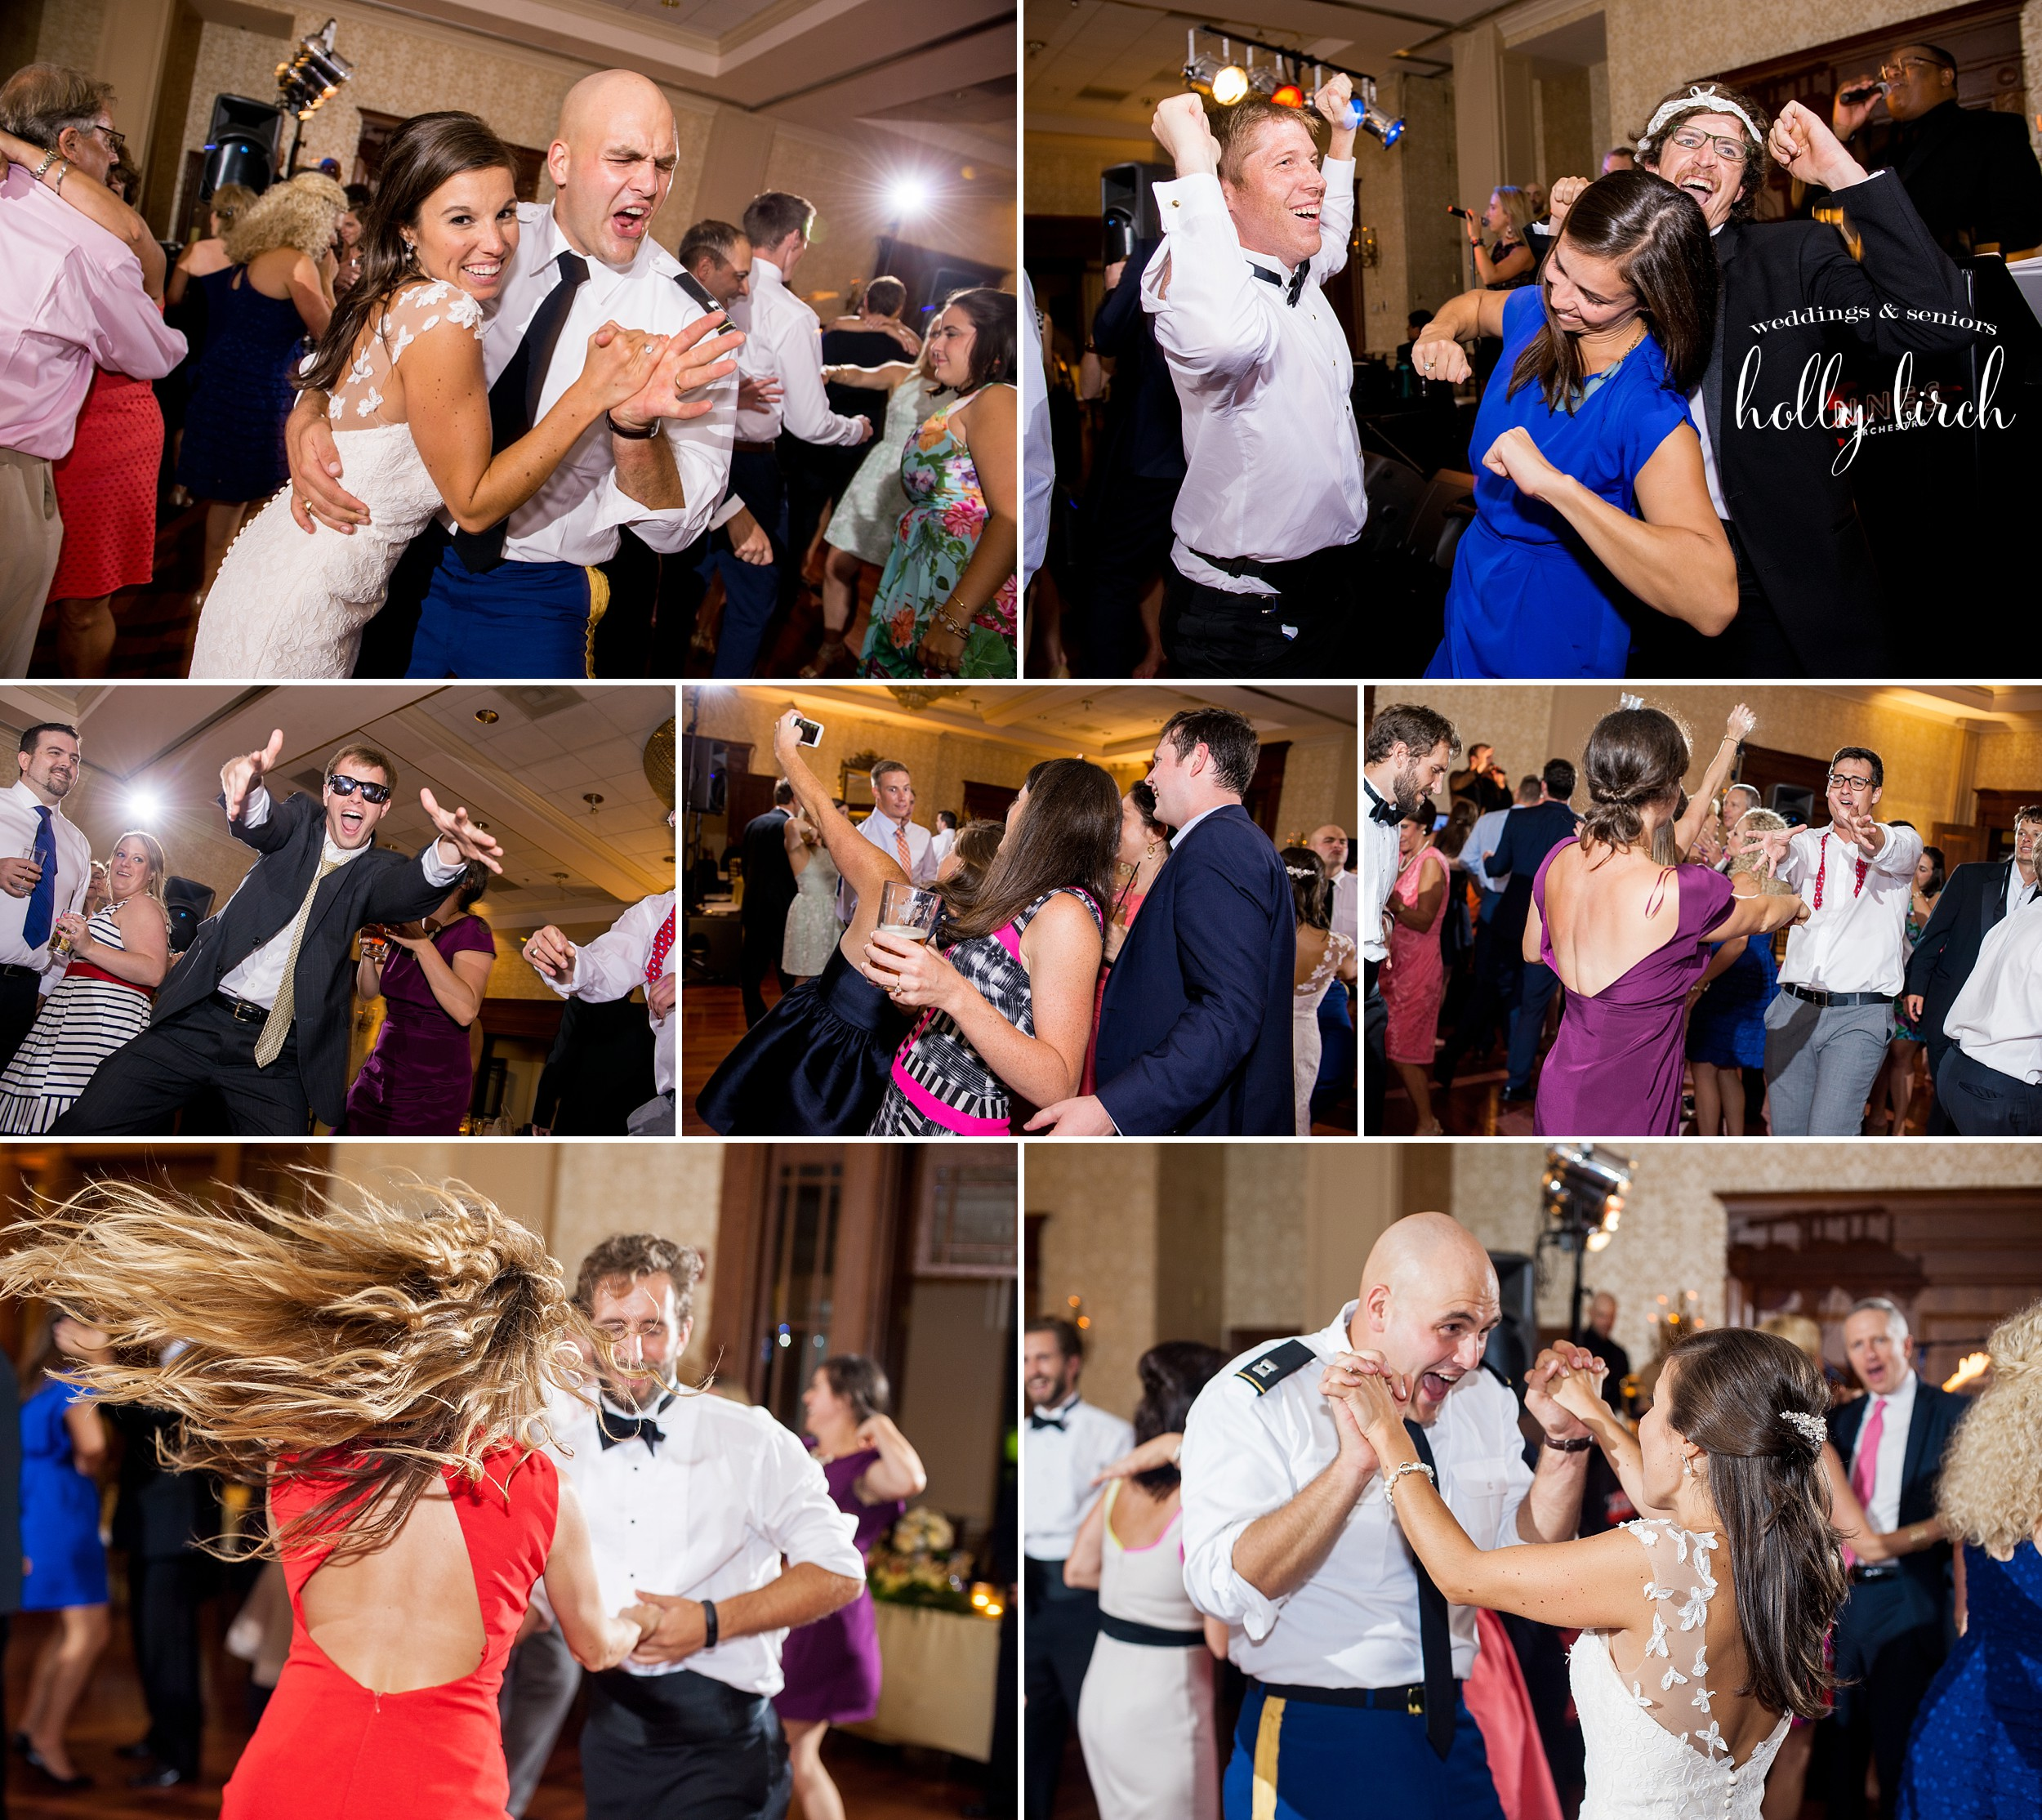 wedding dancing fun photos